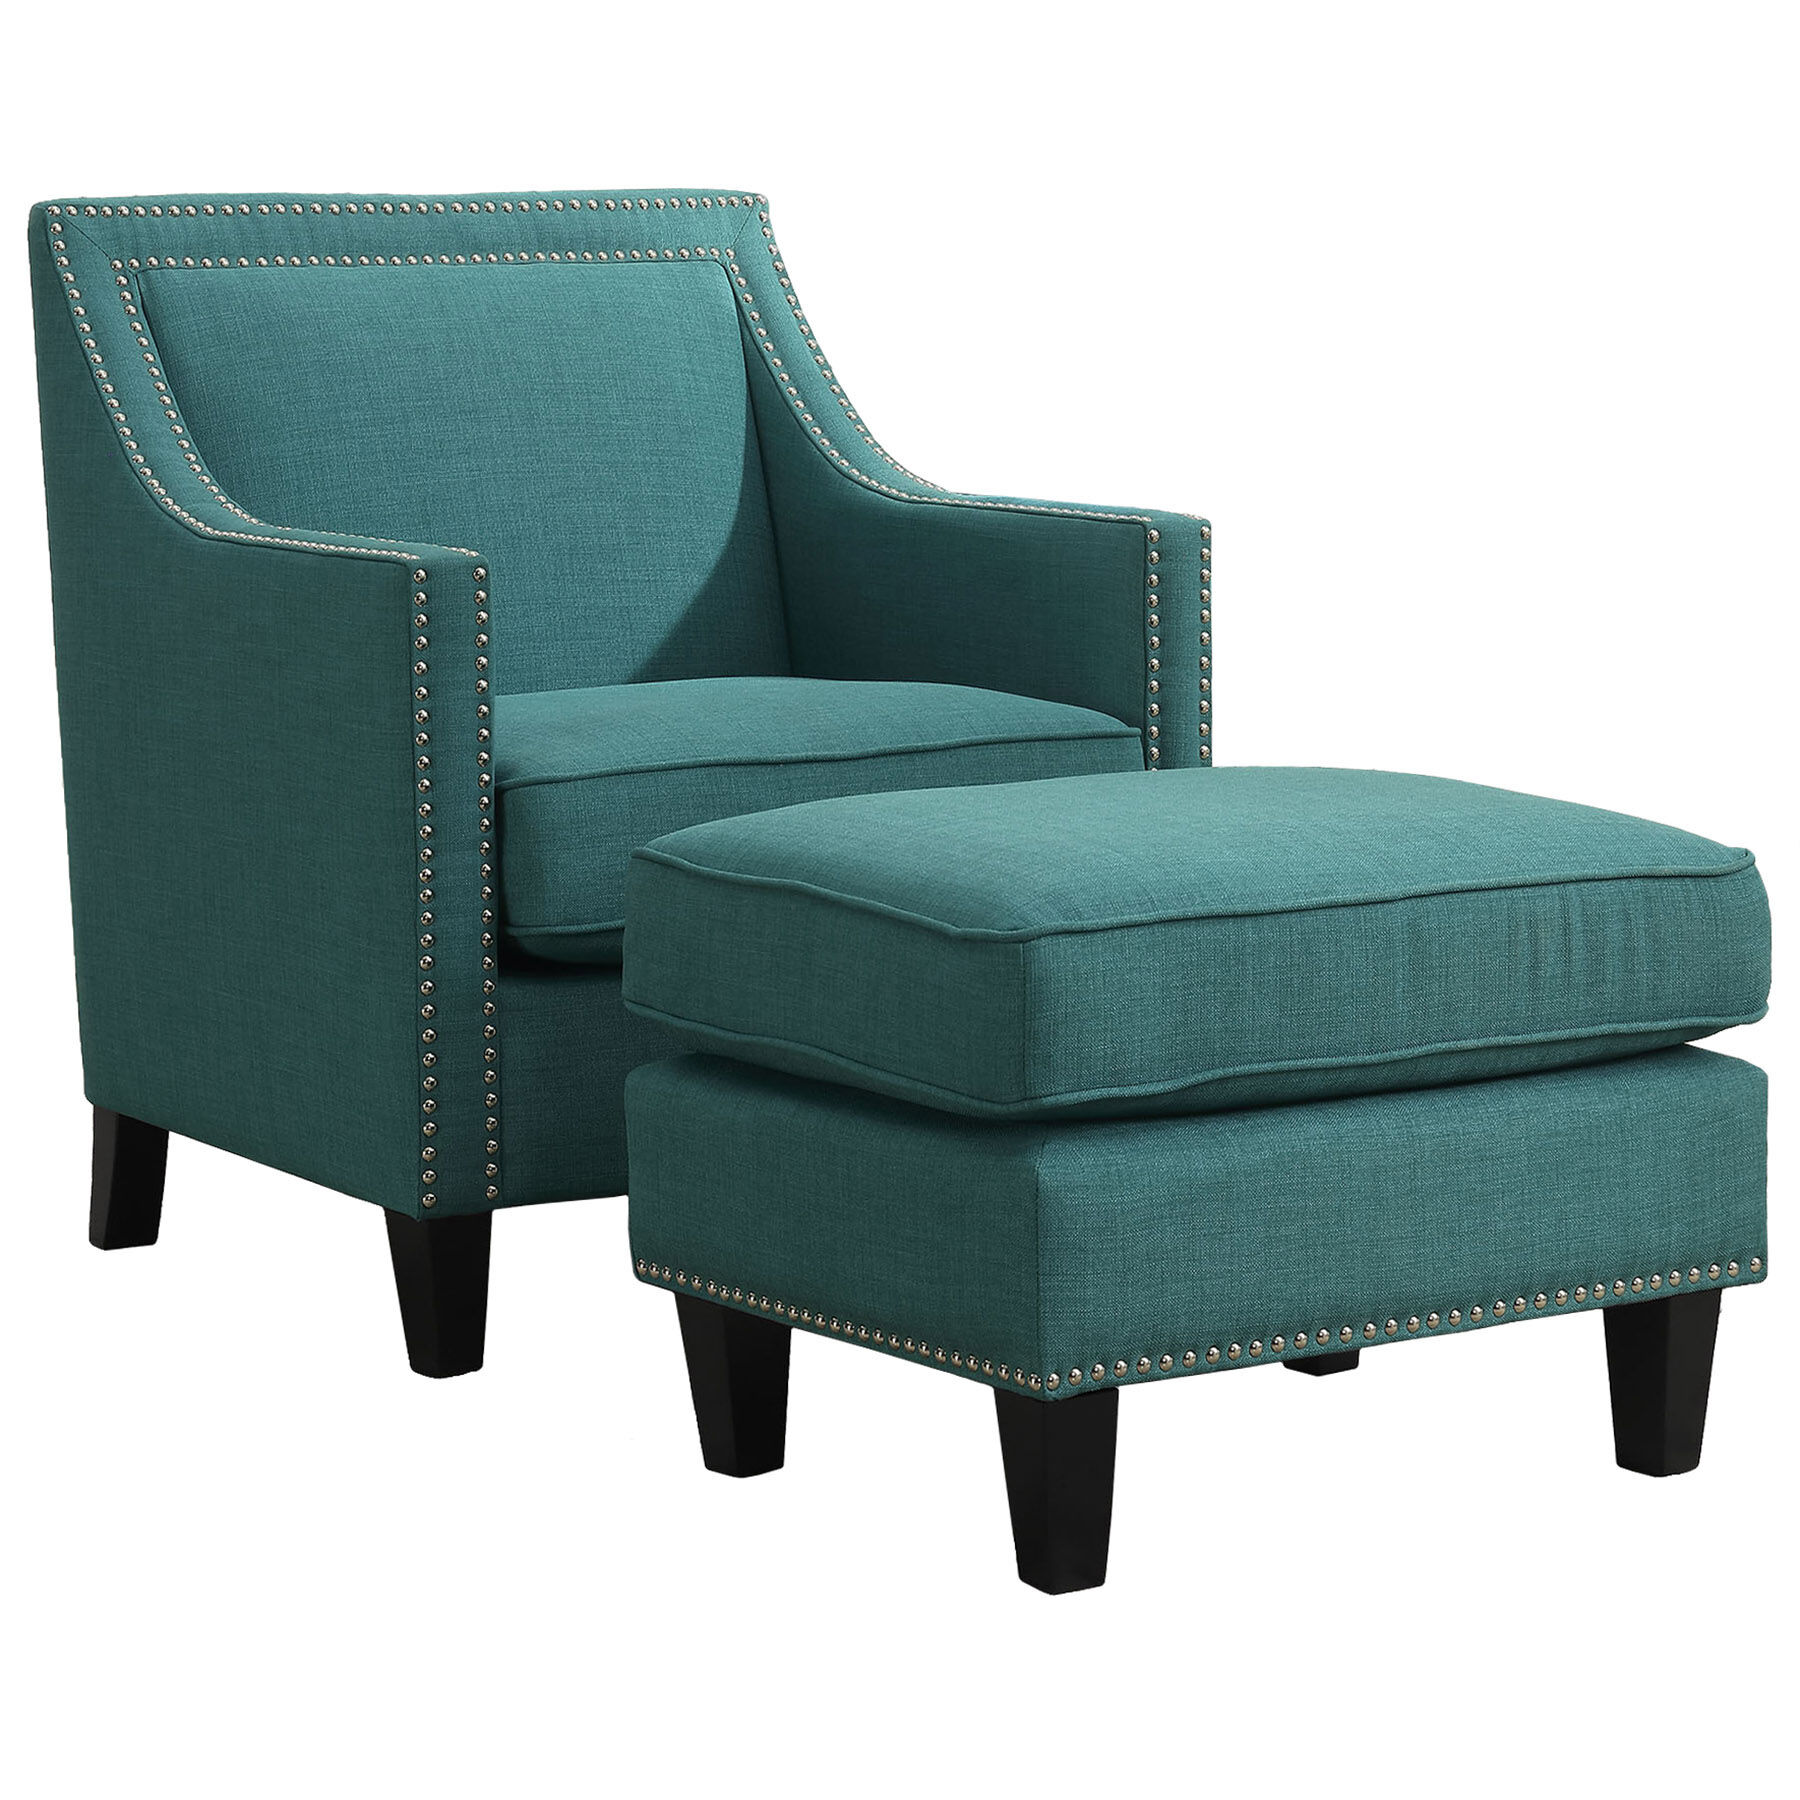 Teal Chair Erica Chair Teal At Home